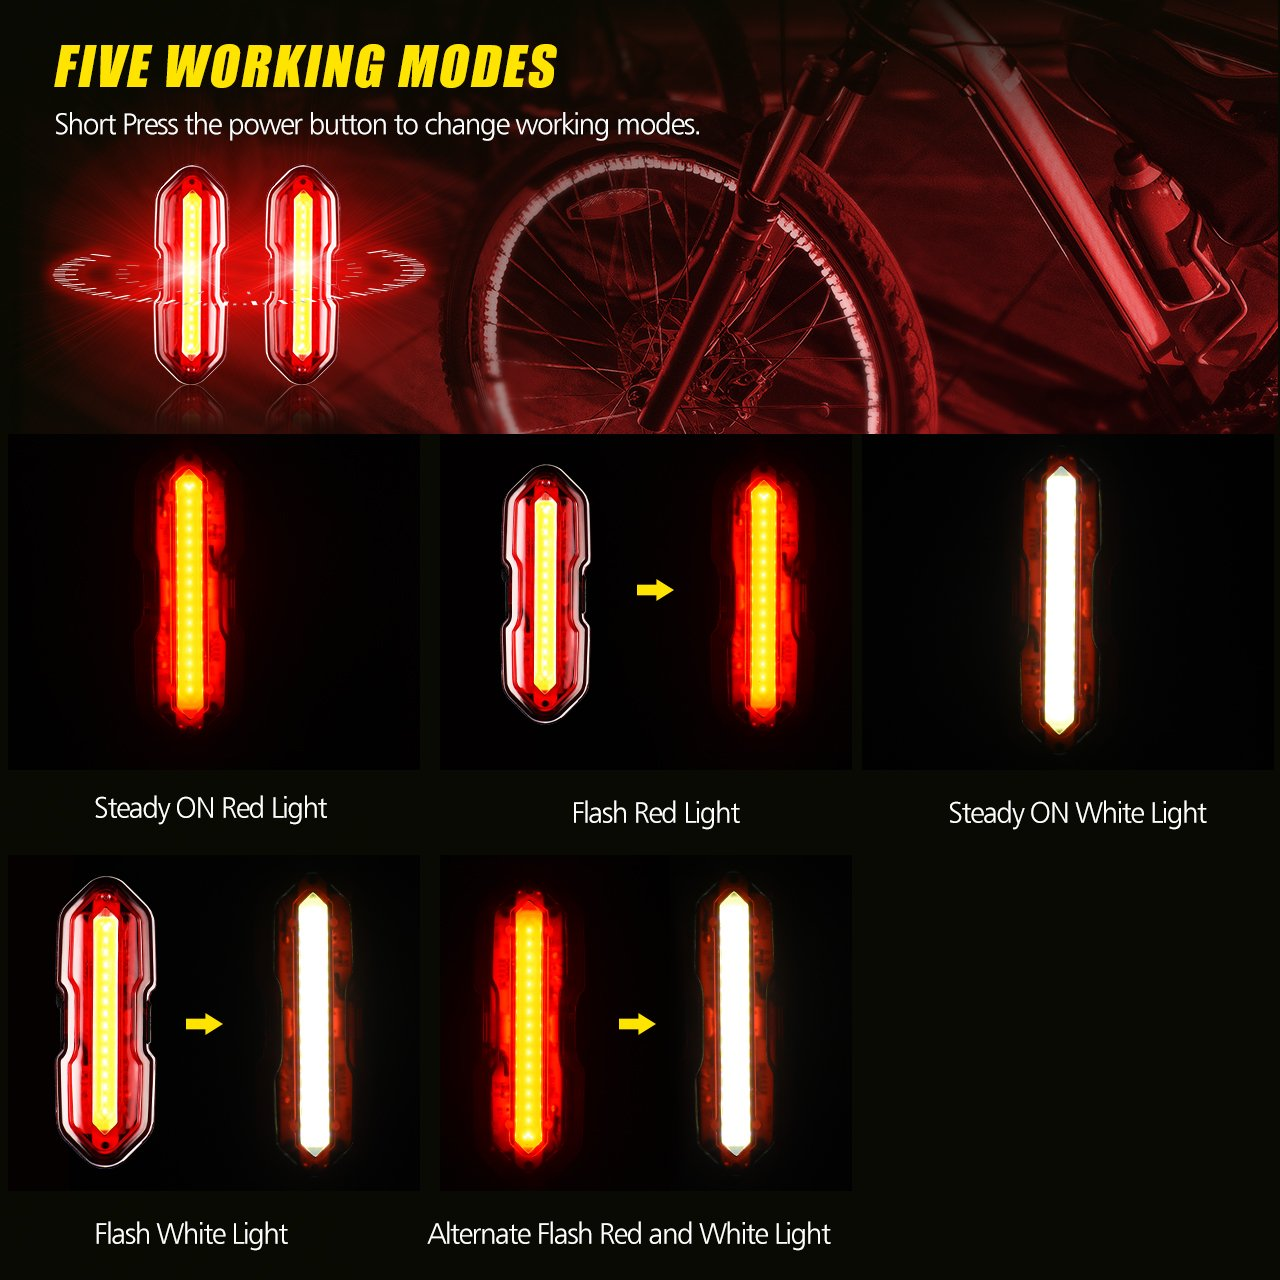 USB Rechargeable Water Resistant Ultra-Bright Bike Taillights Bike Rear Light with 5 Light Modes LED Bicycle Light 2 Packs Fits On Any Road Bikes TOPELEK Bike Lights